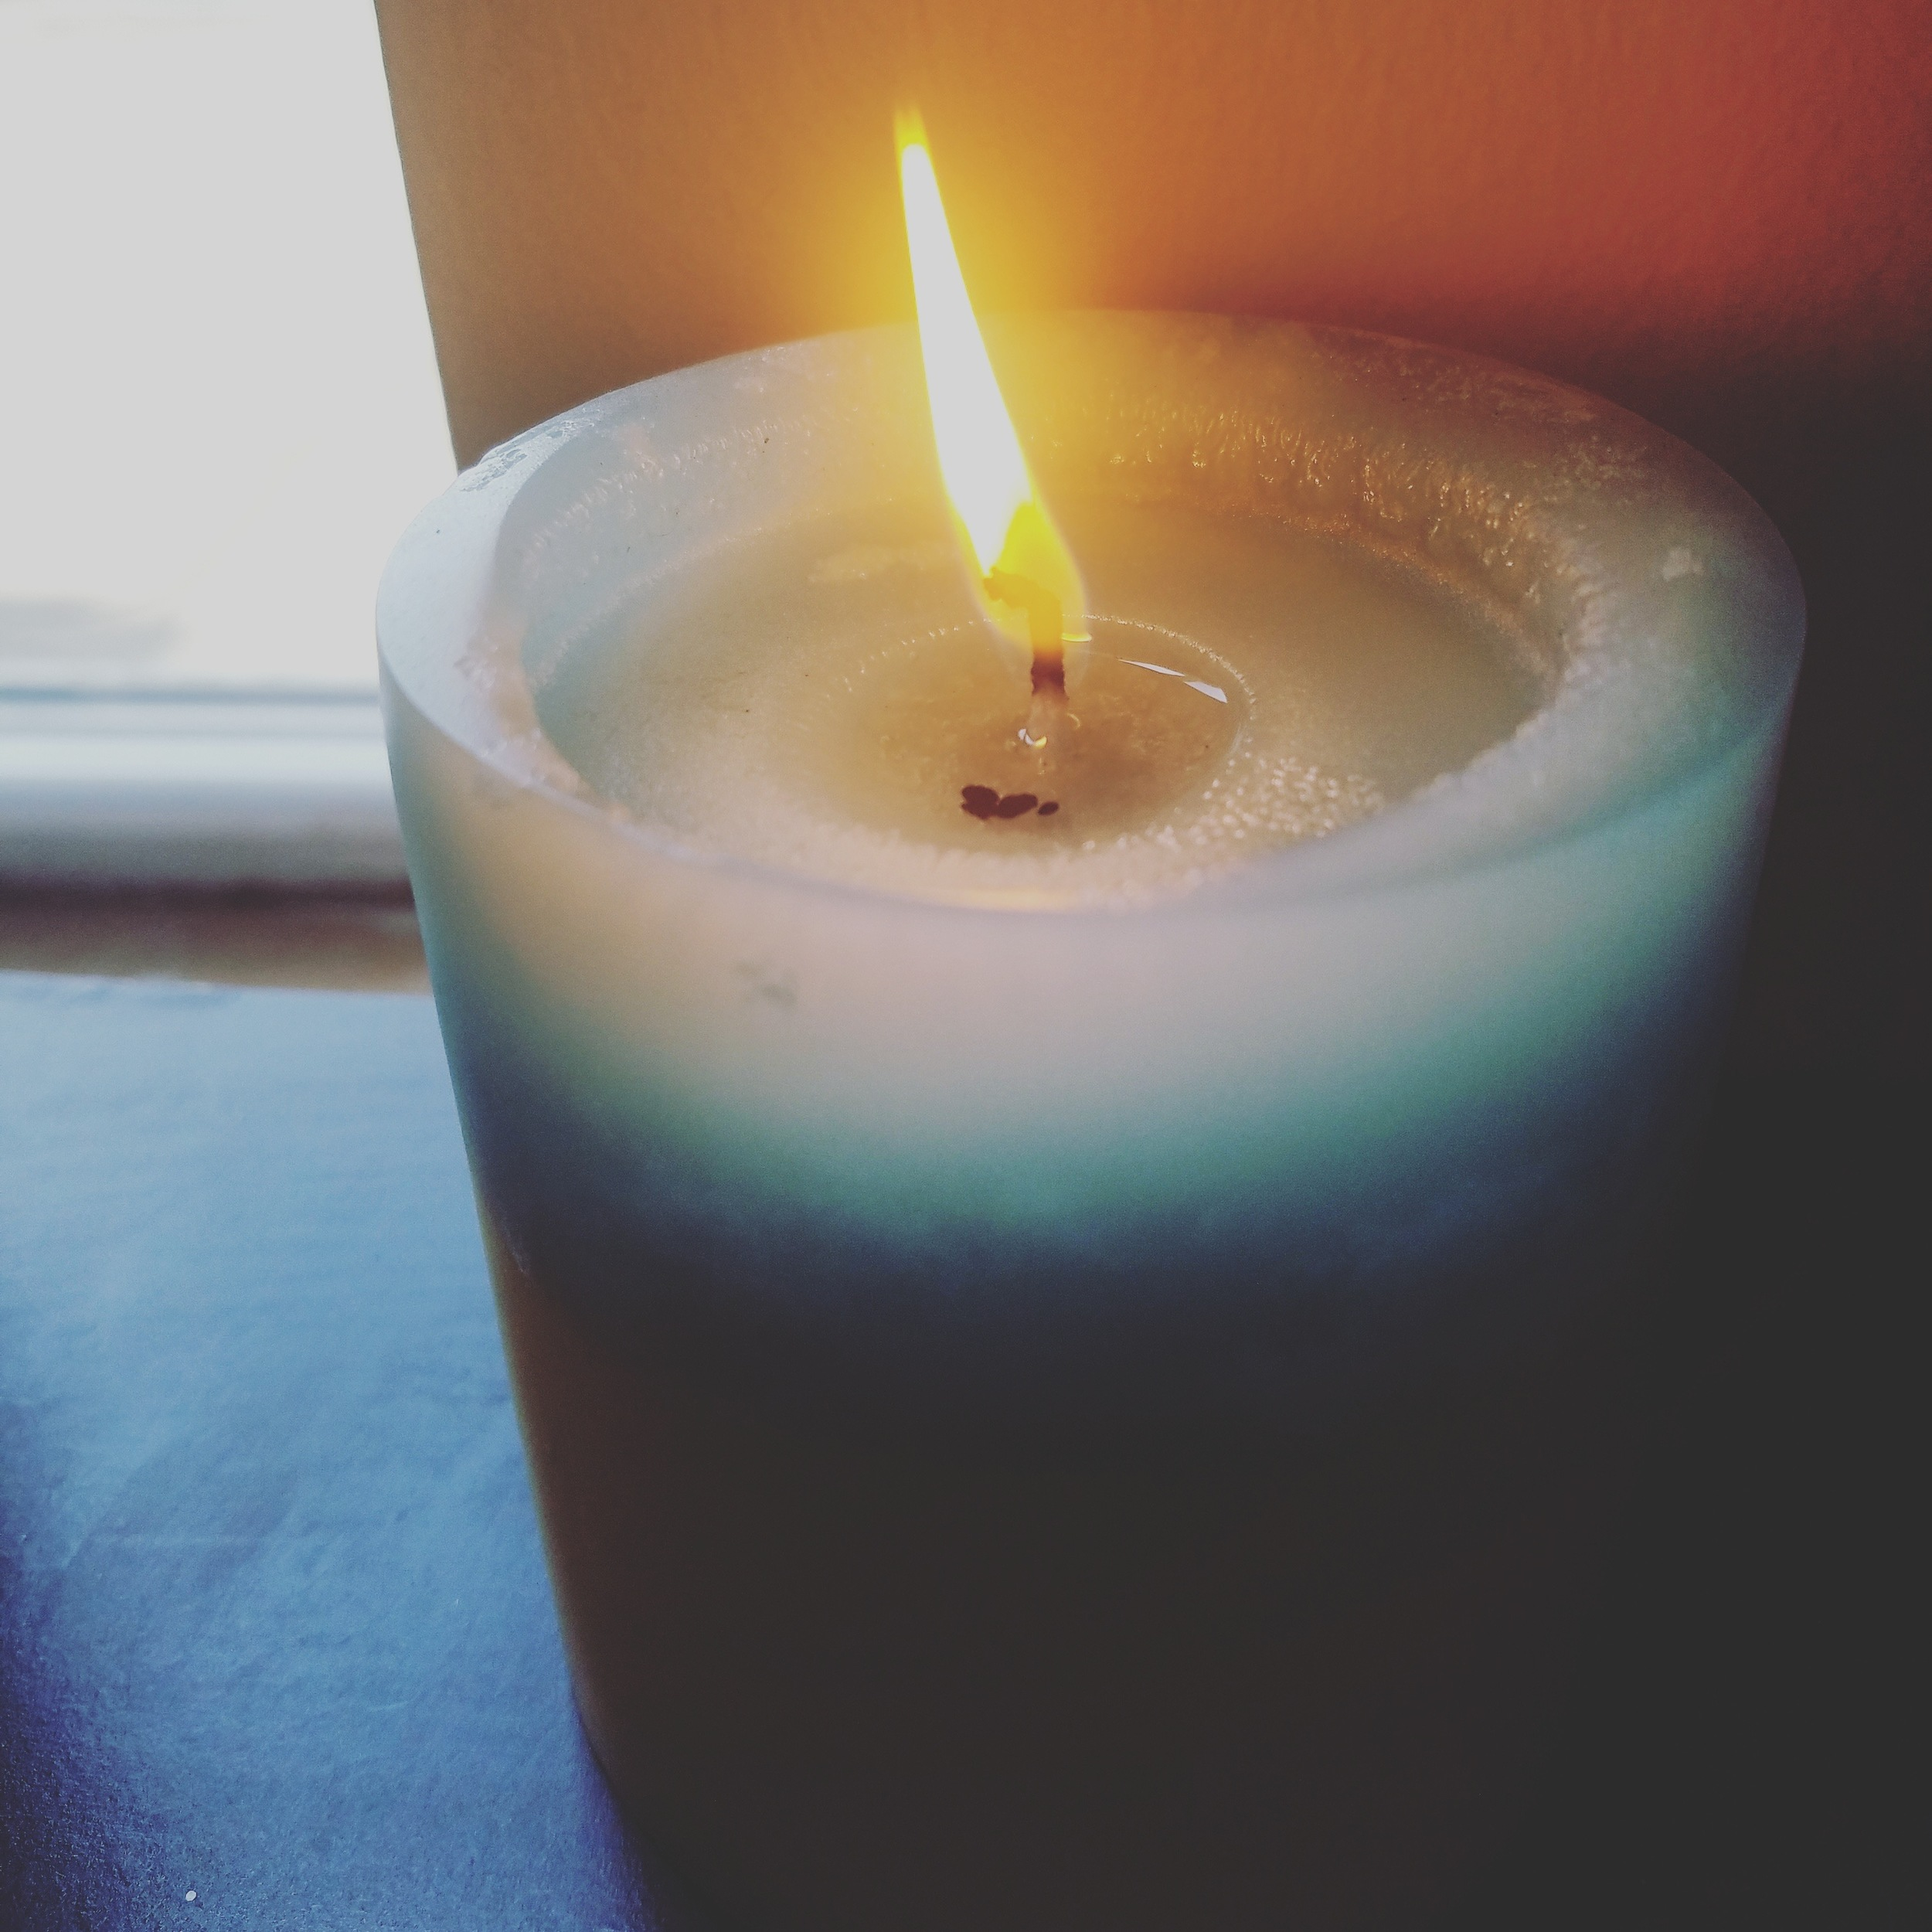 i am going to do my best work as this candle burns.